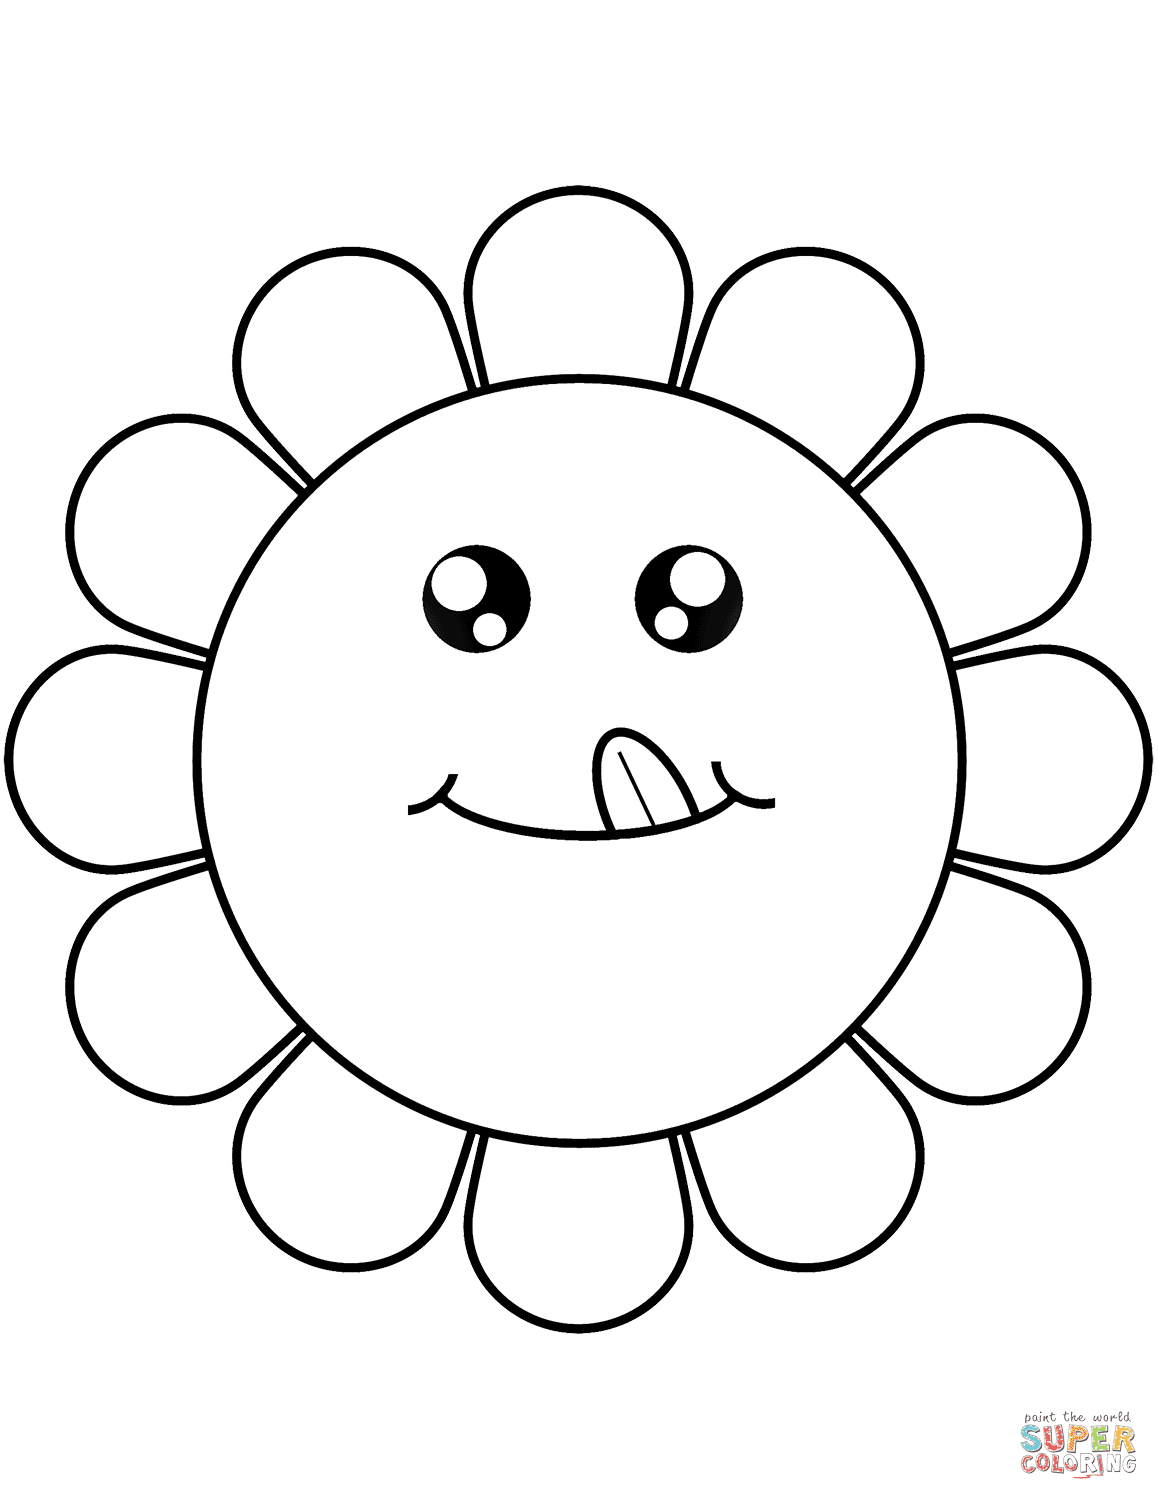 Cartoon Flower Face Coloring Page Free Printable Coloring Pages